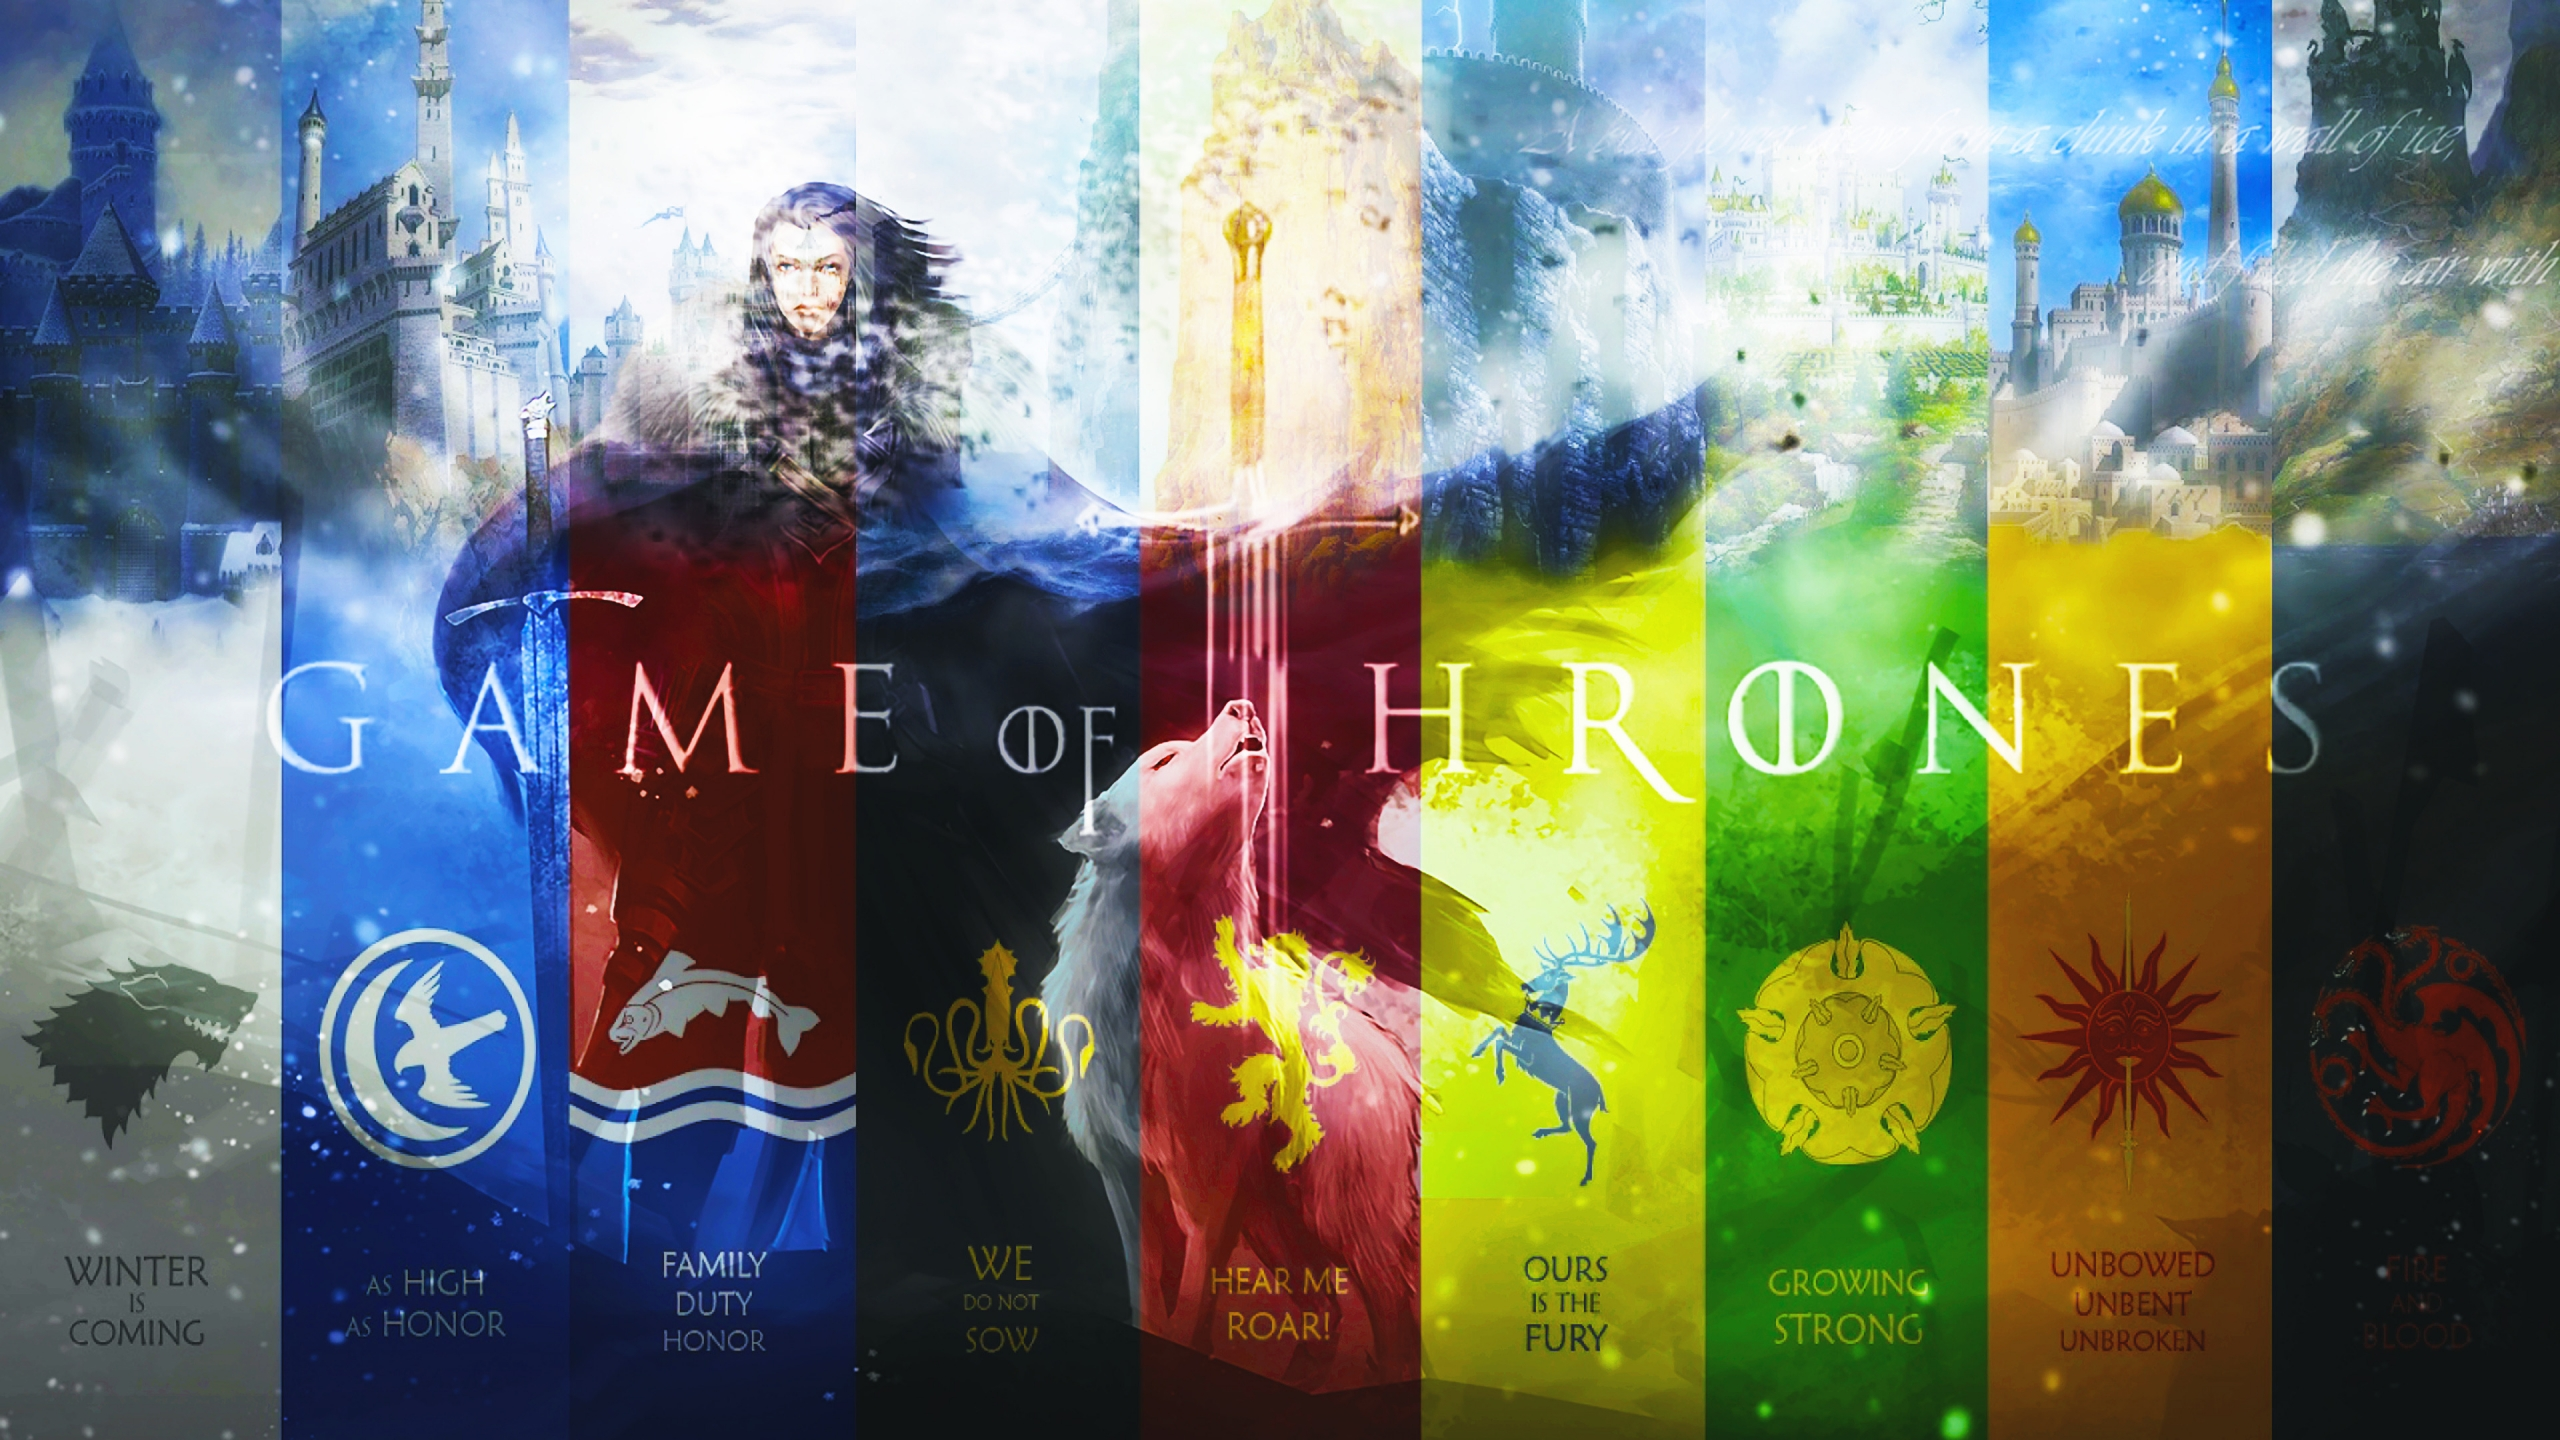 2560x1440 Game of Thrones Art